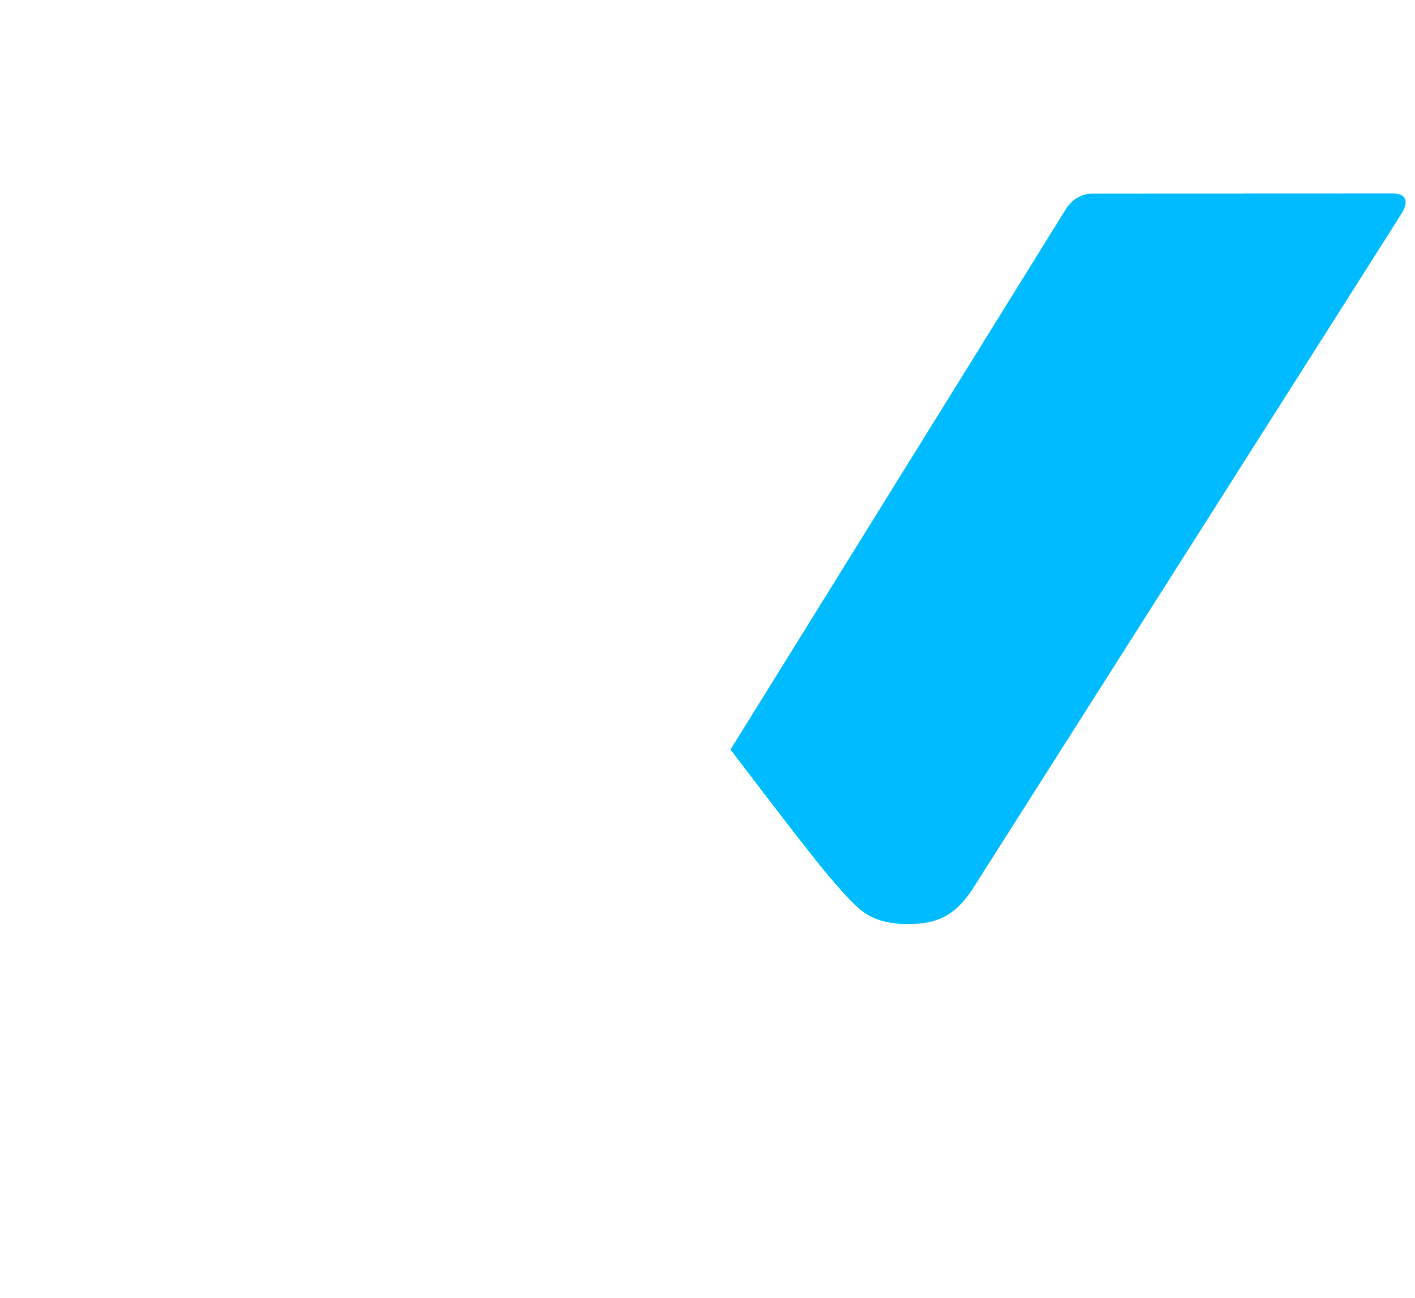 RV Systems